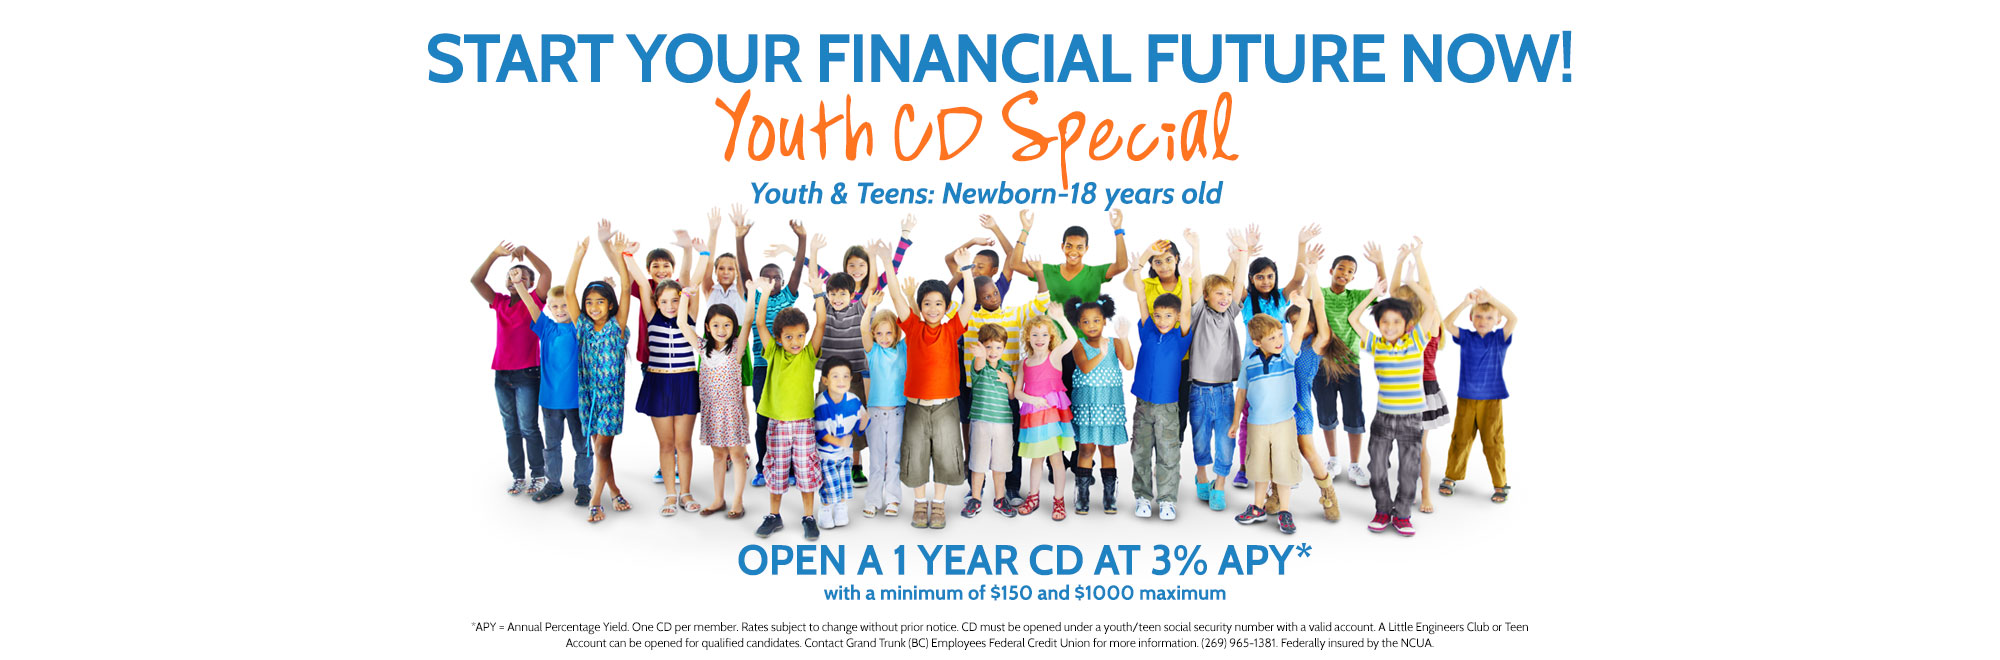 Start Your Financial Future Now! Youth CD Special